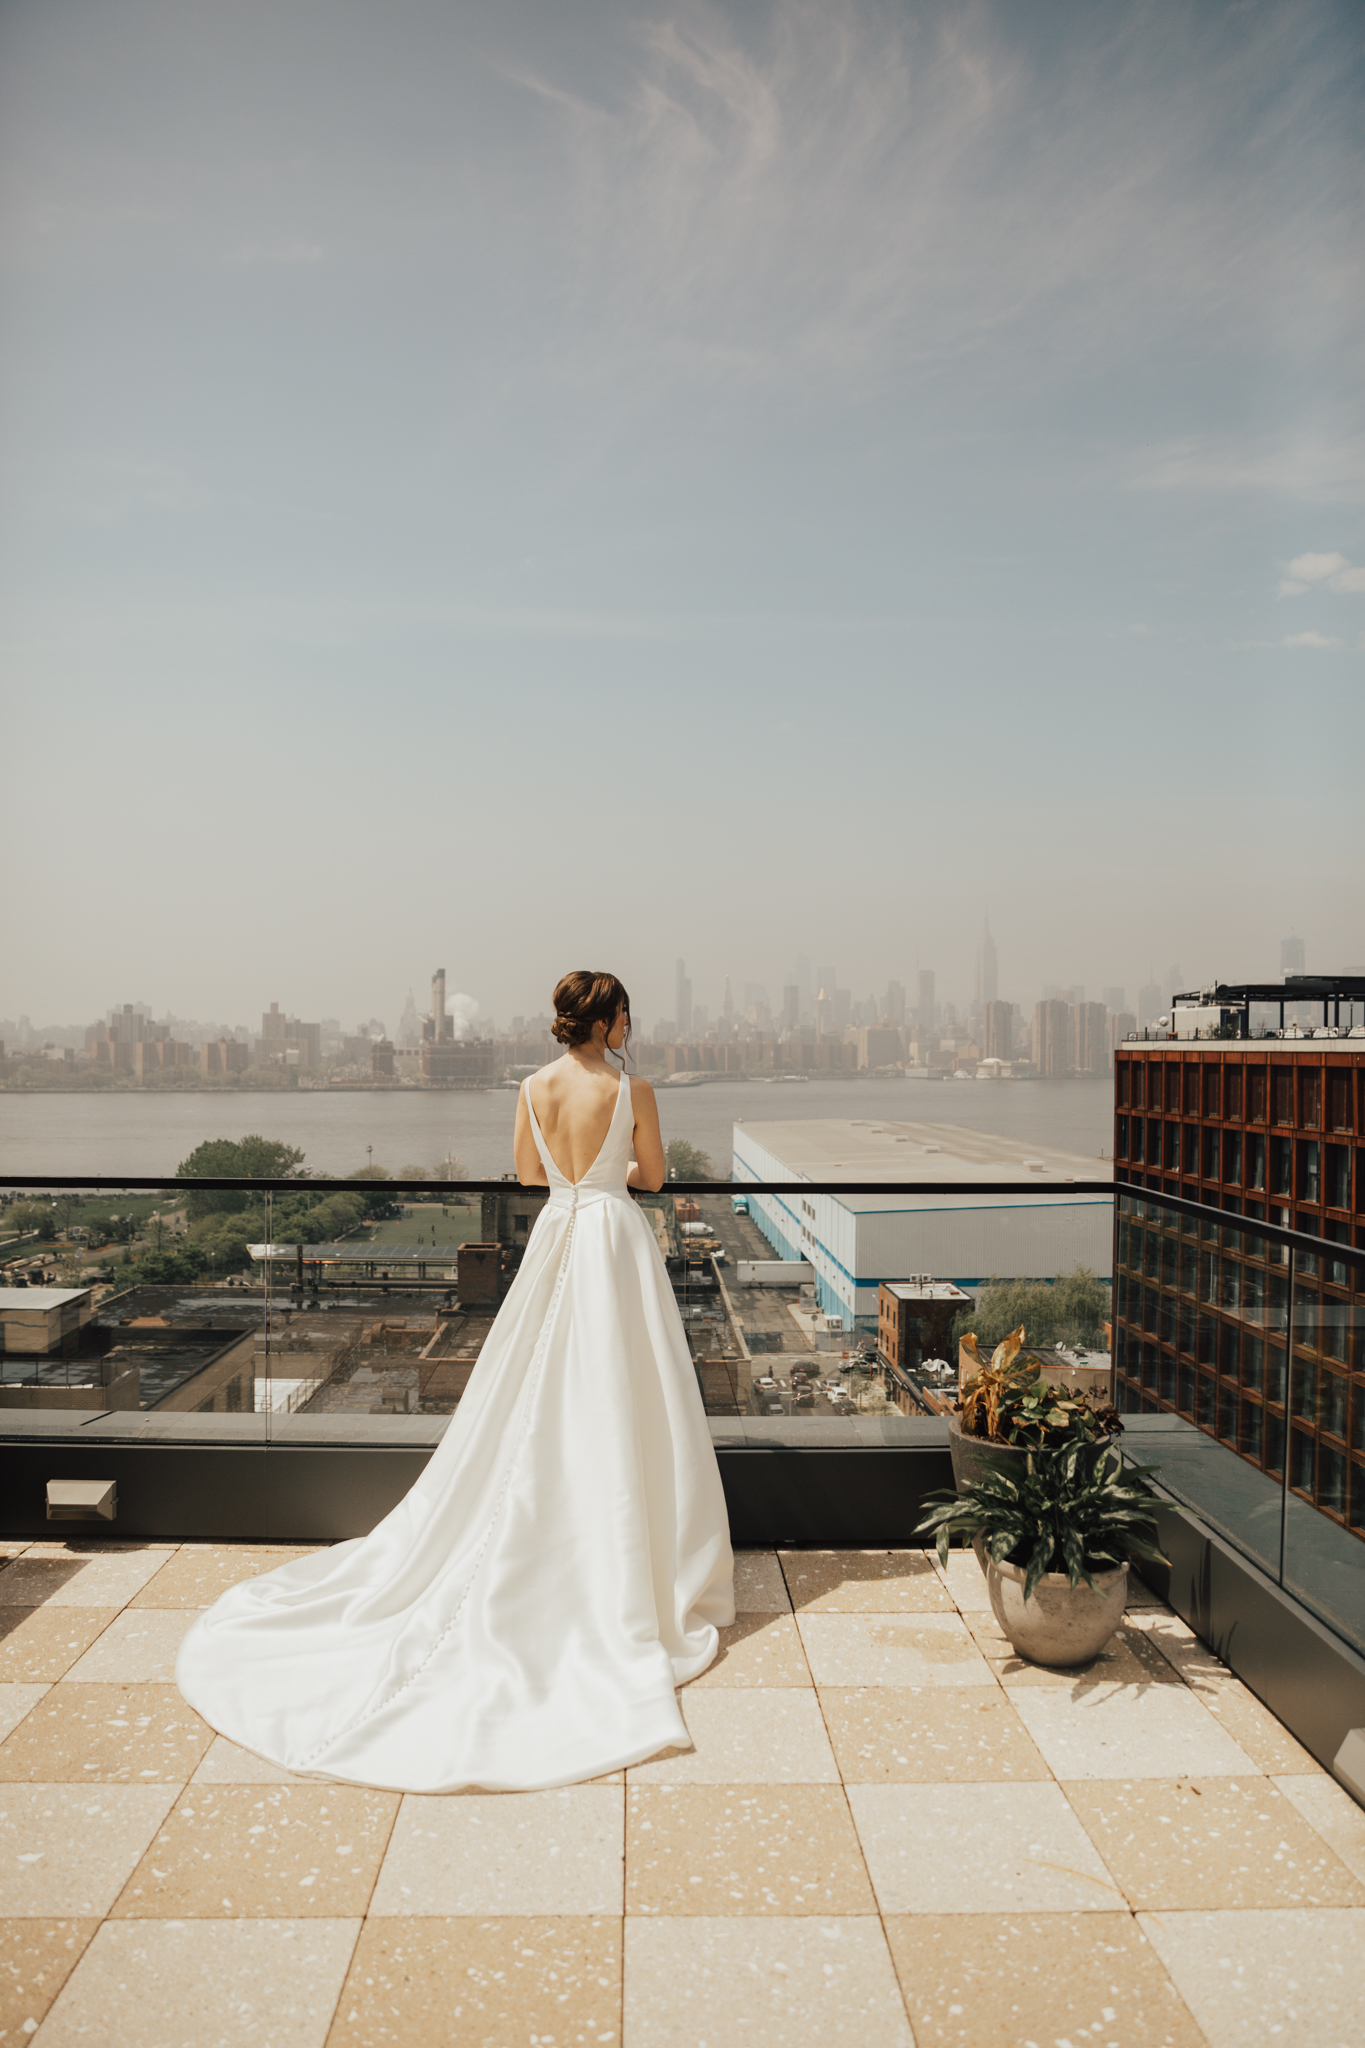 DOBBIN ST BROOKLYN WEDDING